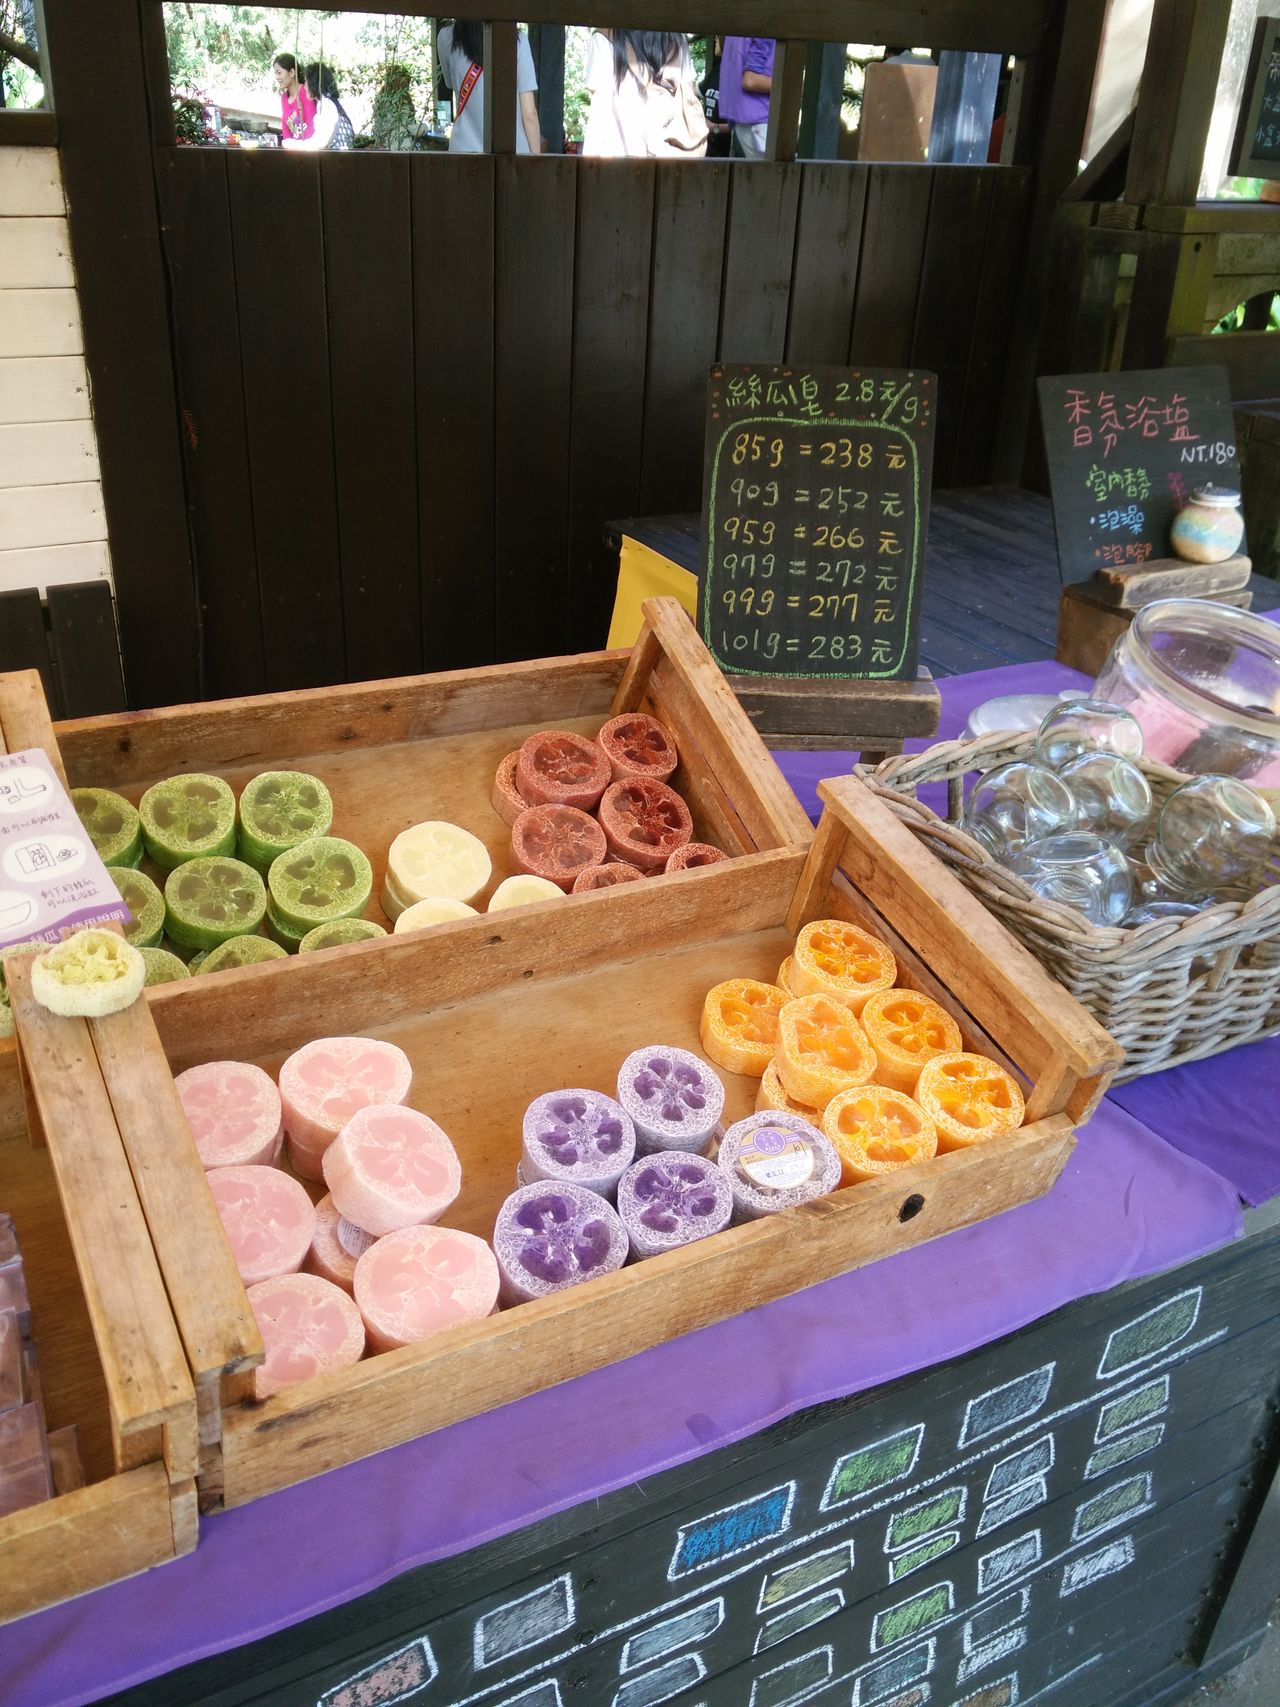 Retail  Market No People Price Tag Outdoors Market Stall Handmade Soap Soap Loofah Taichung Lavender Farm Handmade Soap Loofah Colorful Soaps